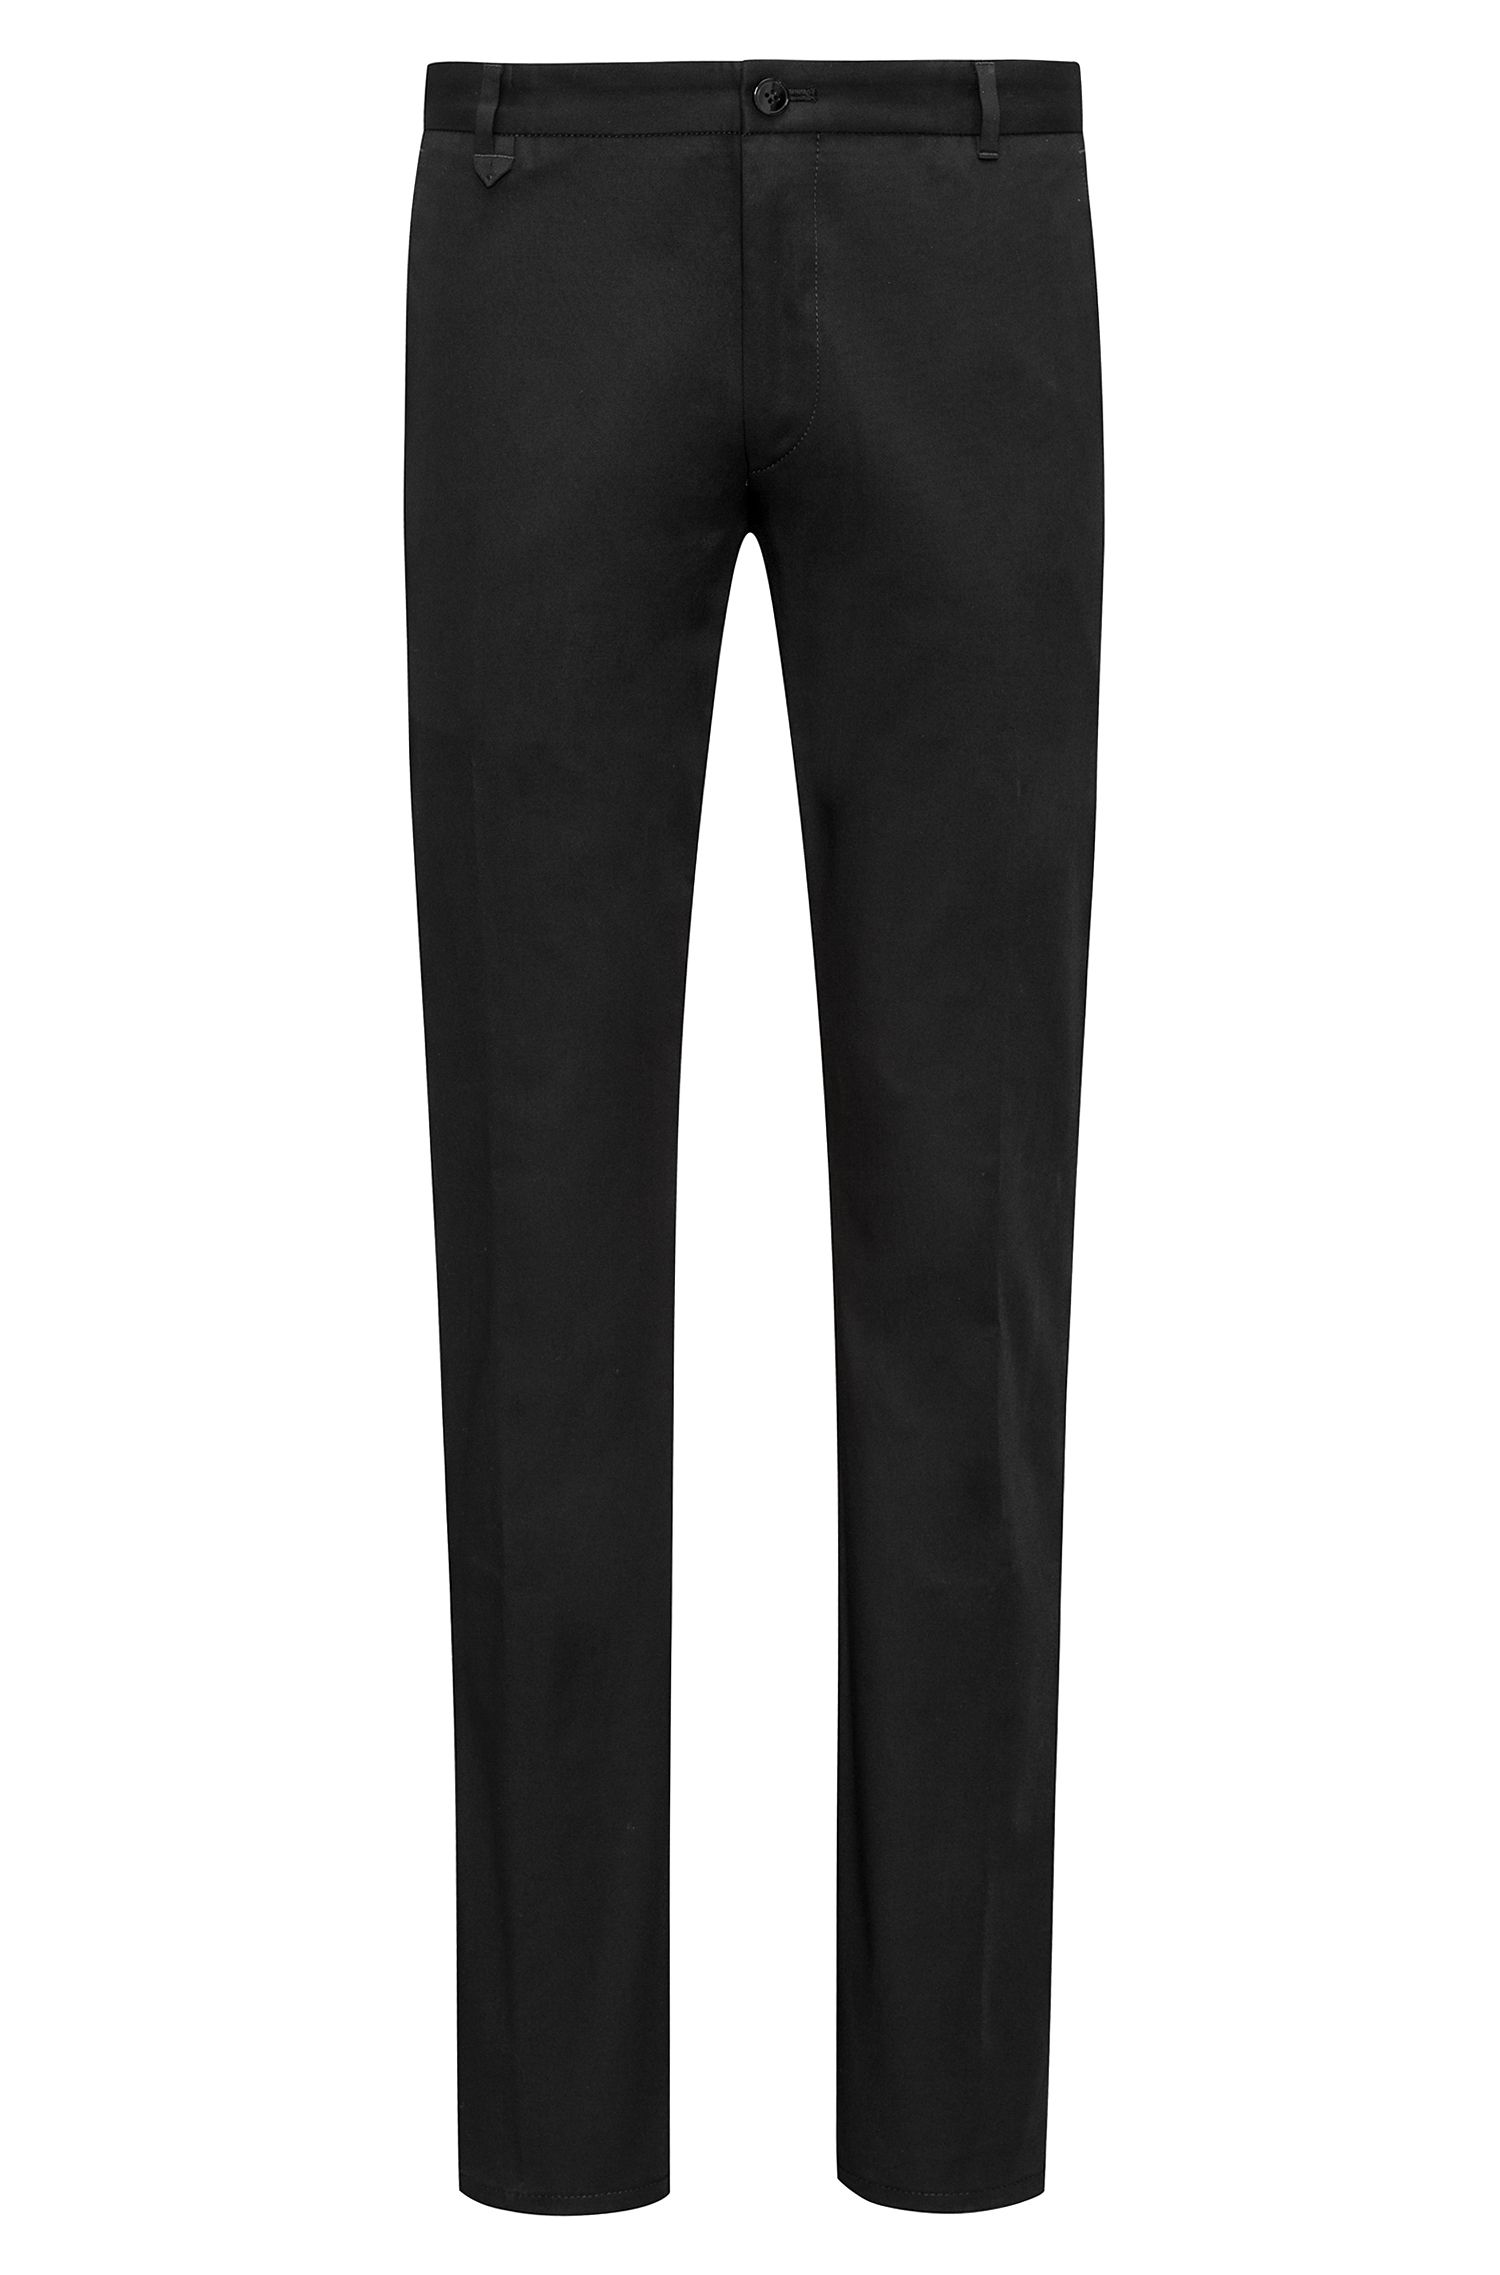 Extra-slim-fit stretch-cotton trousers with signature detailing, Black